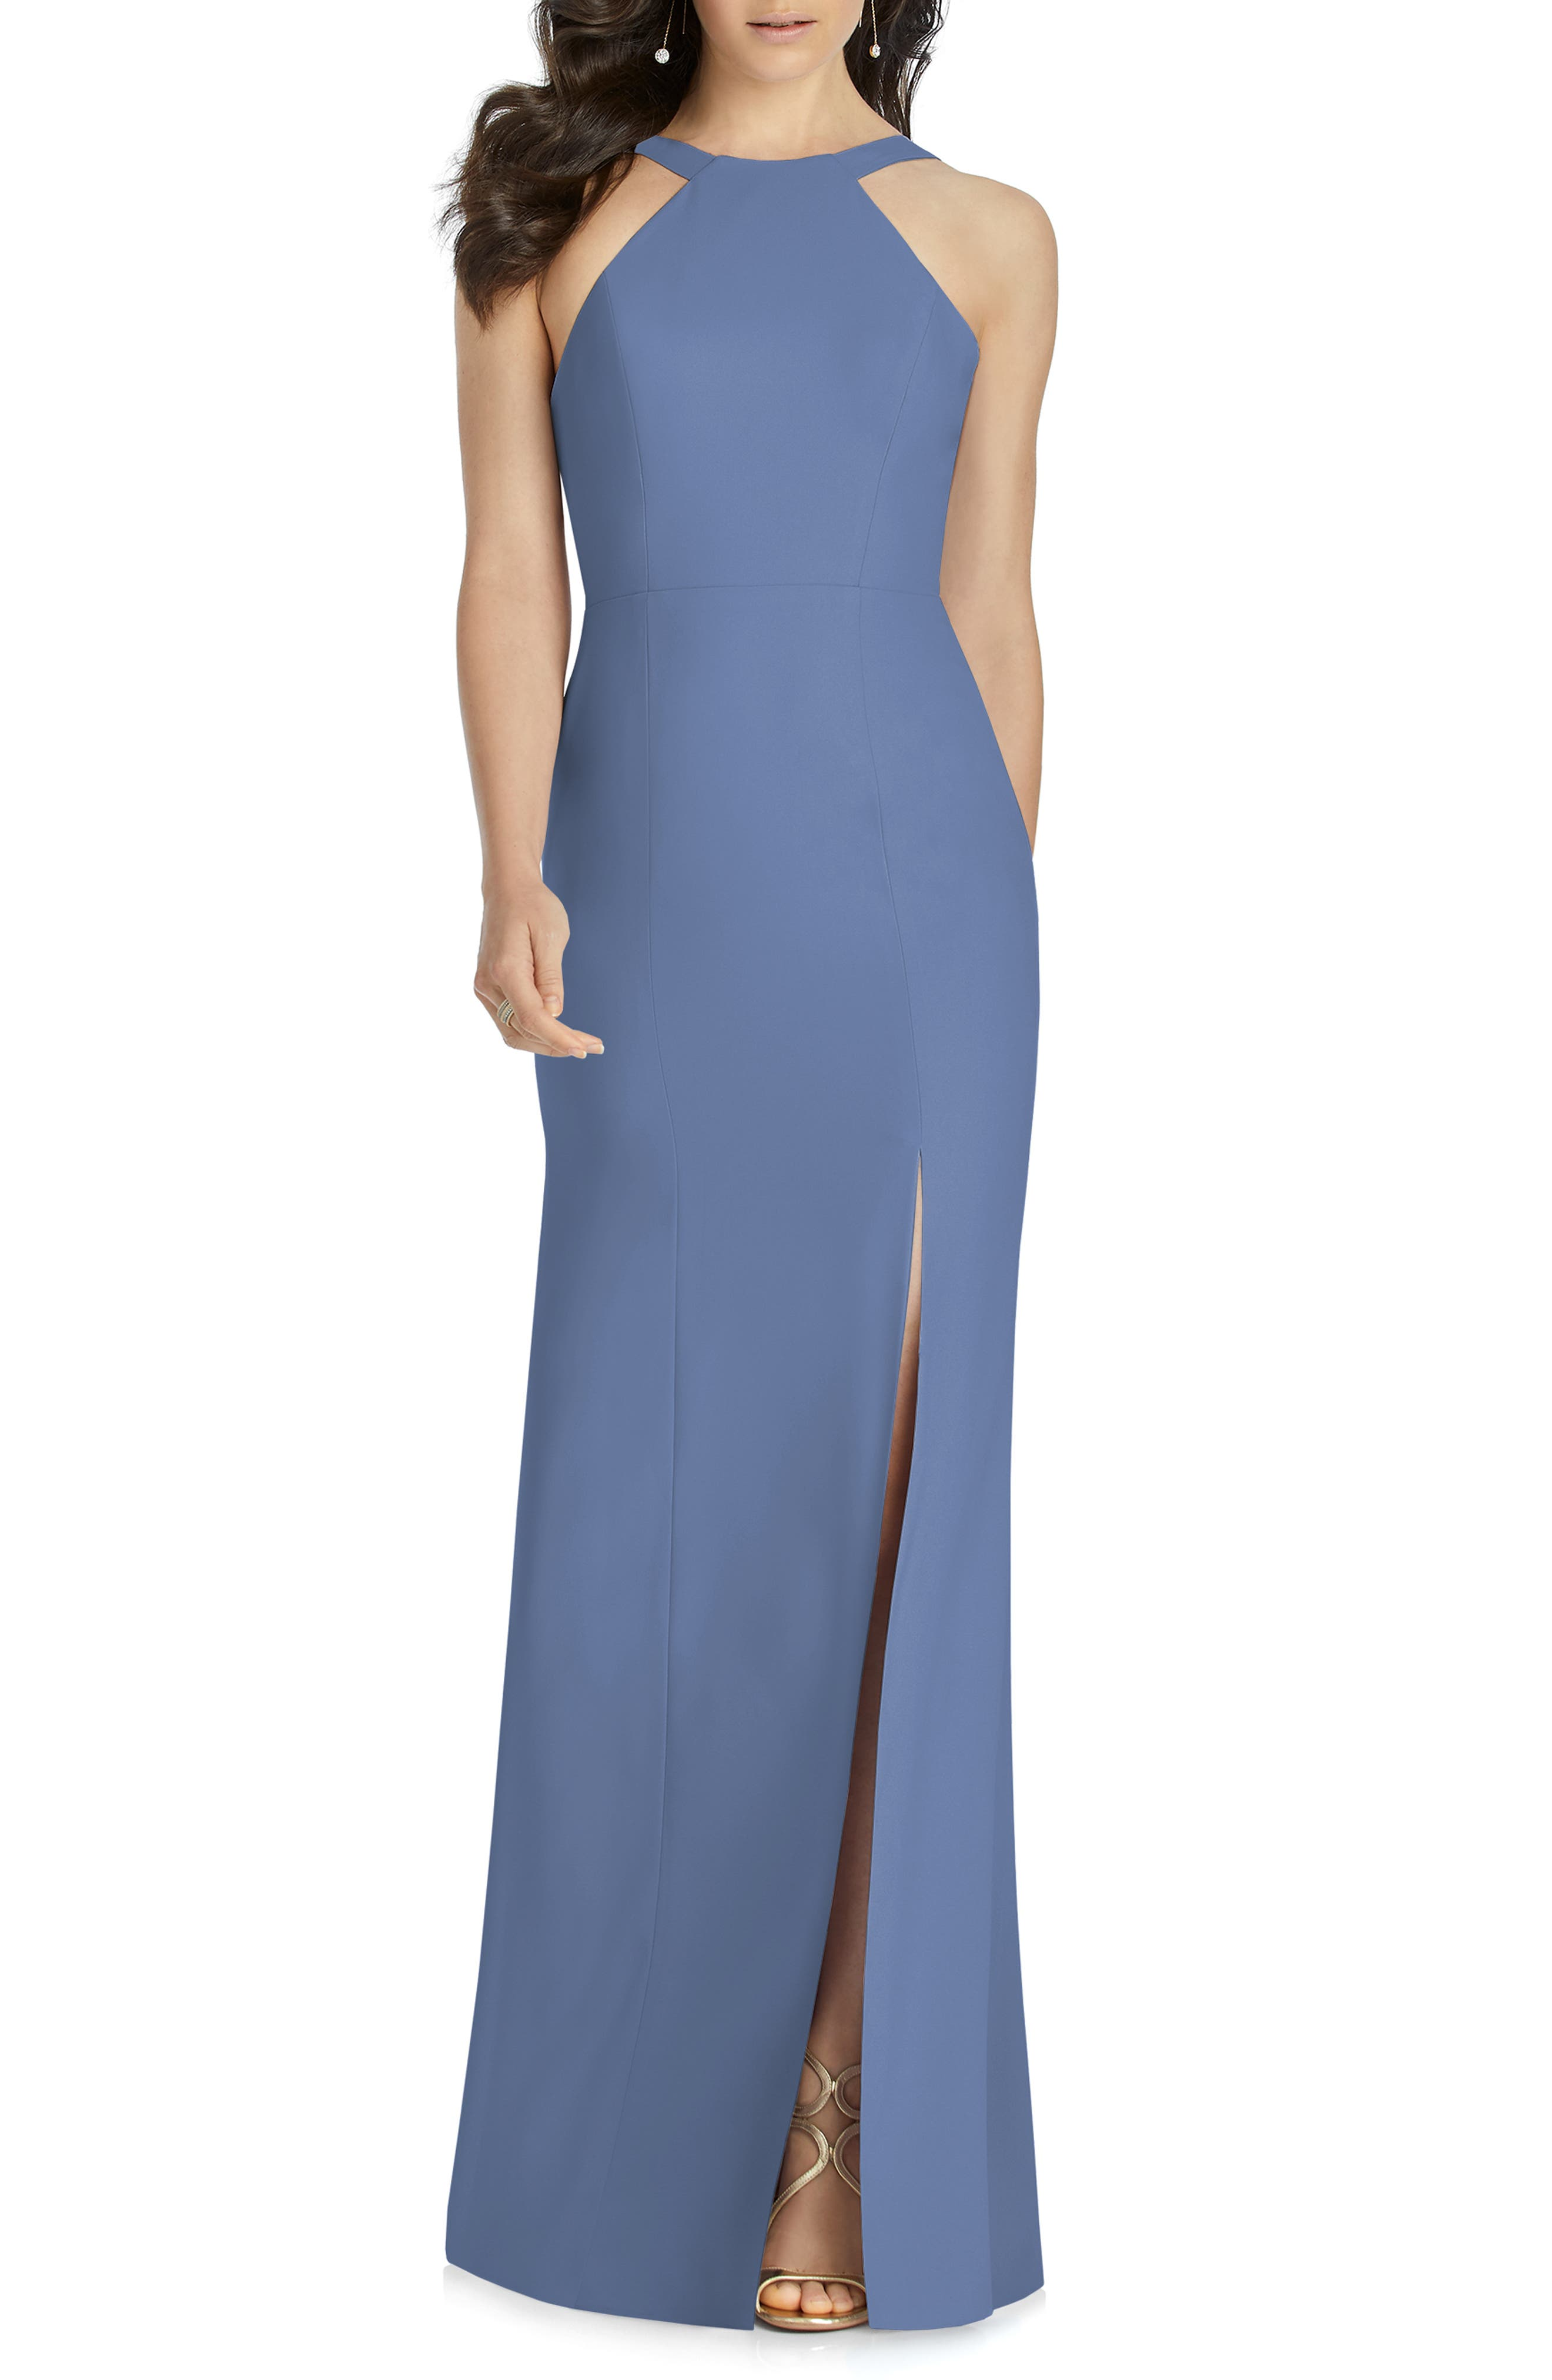 Dessy Collection Cutaway Shoulder Crepe Gown, 8 (similar to 1) - Blue